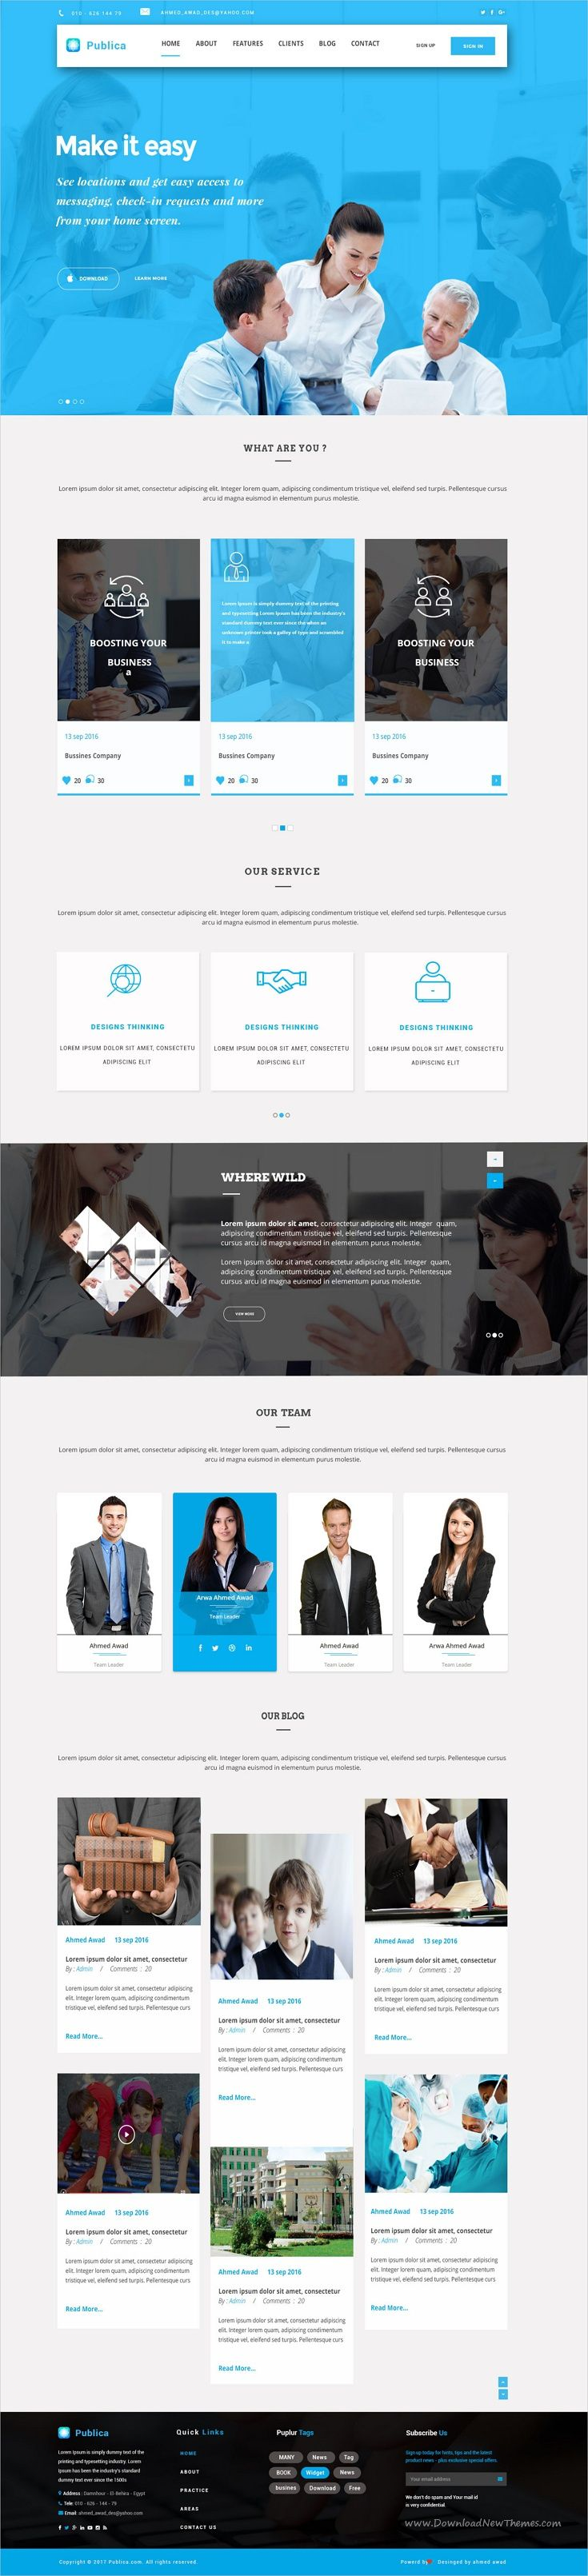 Publica is a wonderful premium #PSD #template for stunning #agencies websites download now➩ https://themeforest.net/item/publica-psd-template/19254470?ref=Datasata